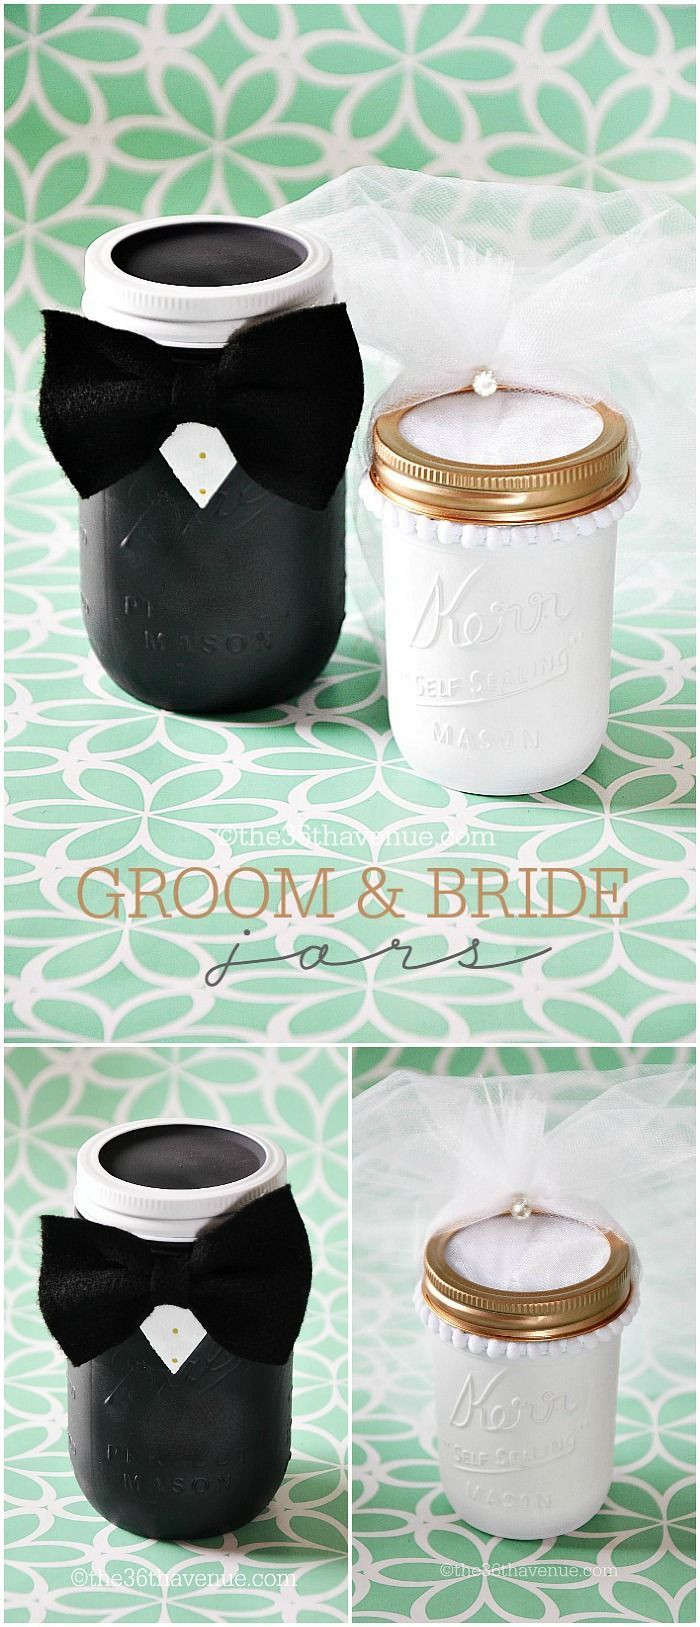 Best ideas about DIY Wedding Gifts For Bride And Groom . Save or Pin Mason Jar Crafts Groom & Bride Now.